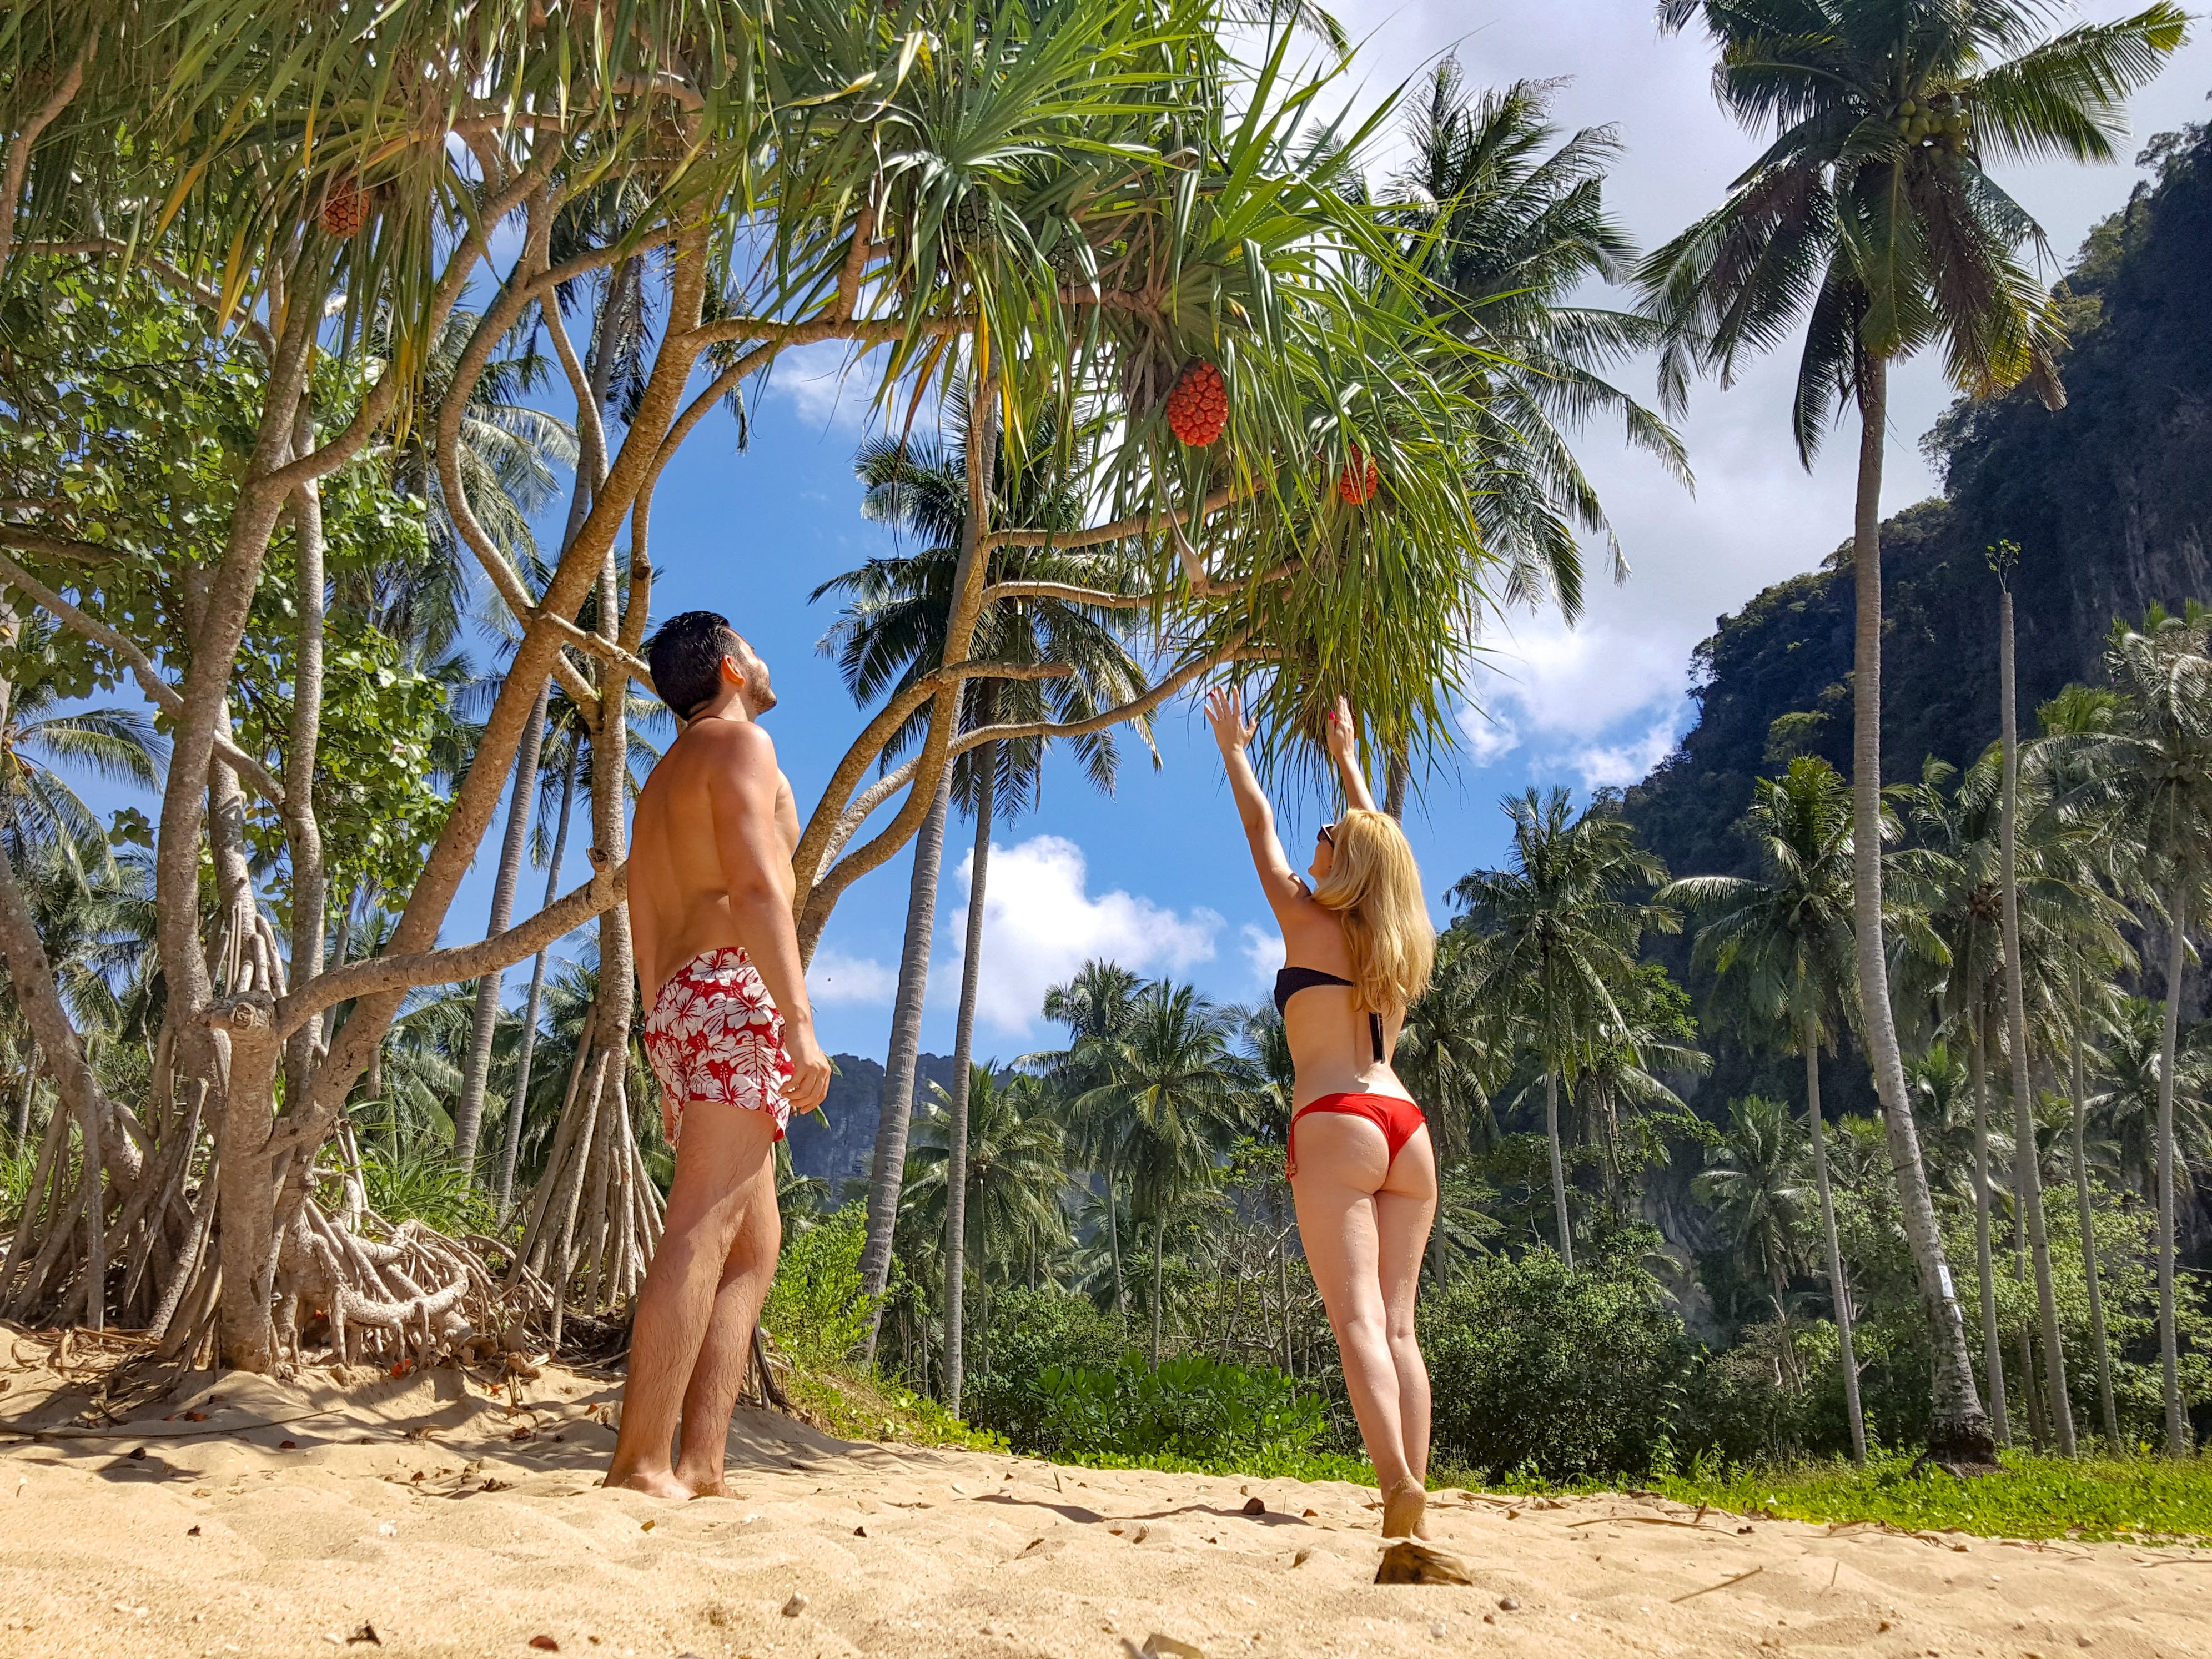 Woman Wearing Black Bikini Top and Red Bottom Beside Man Wearing White and Red Floral Shorts